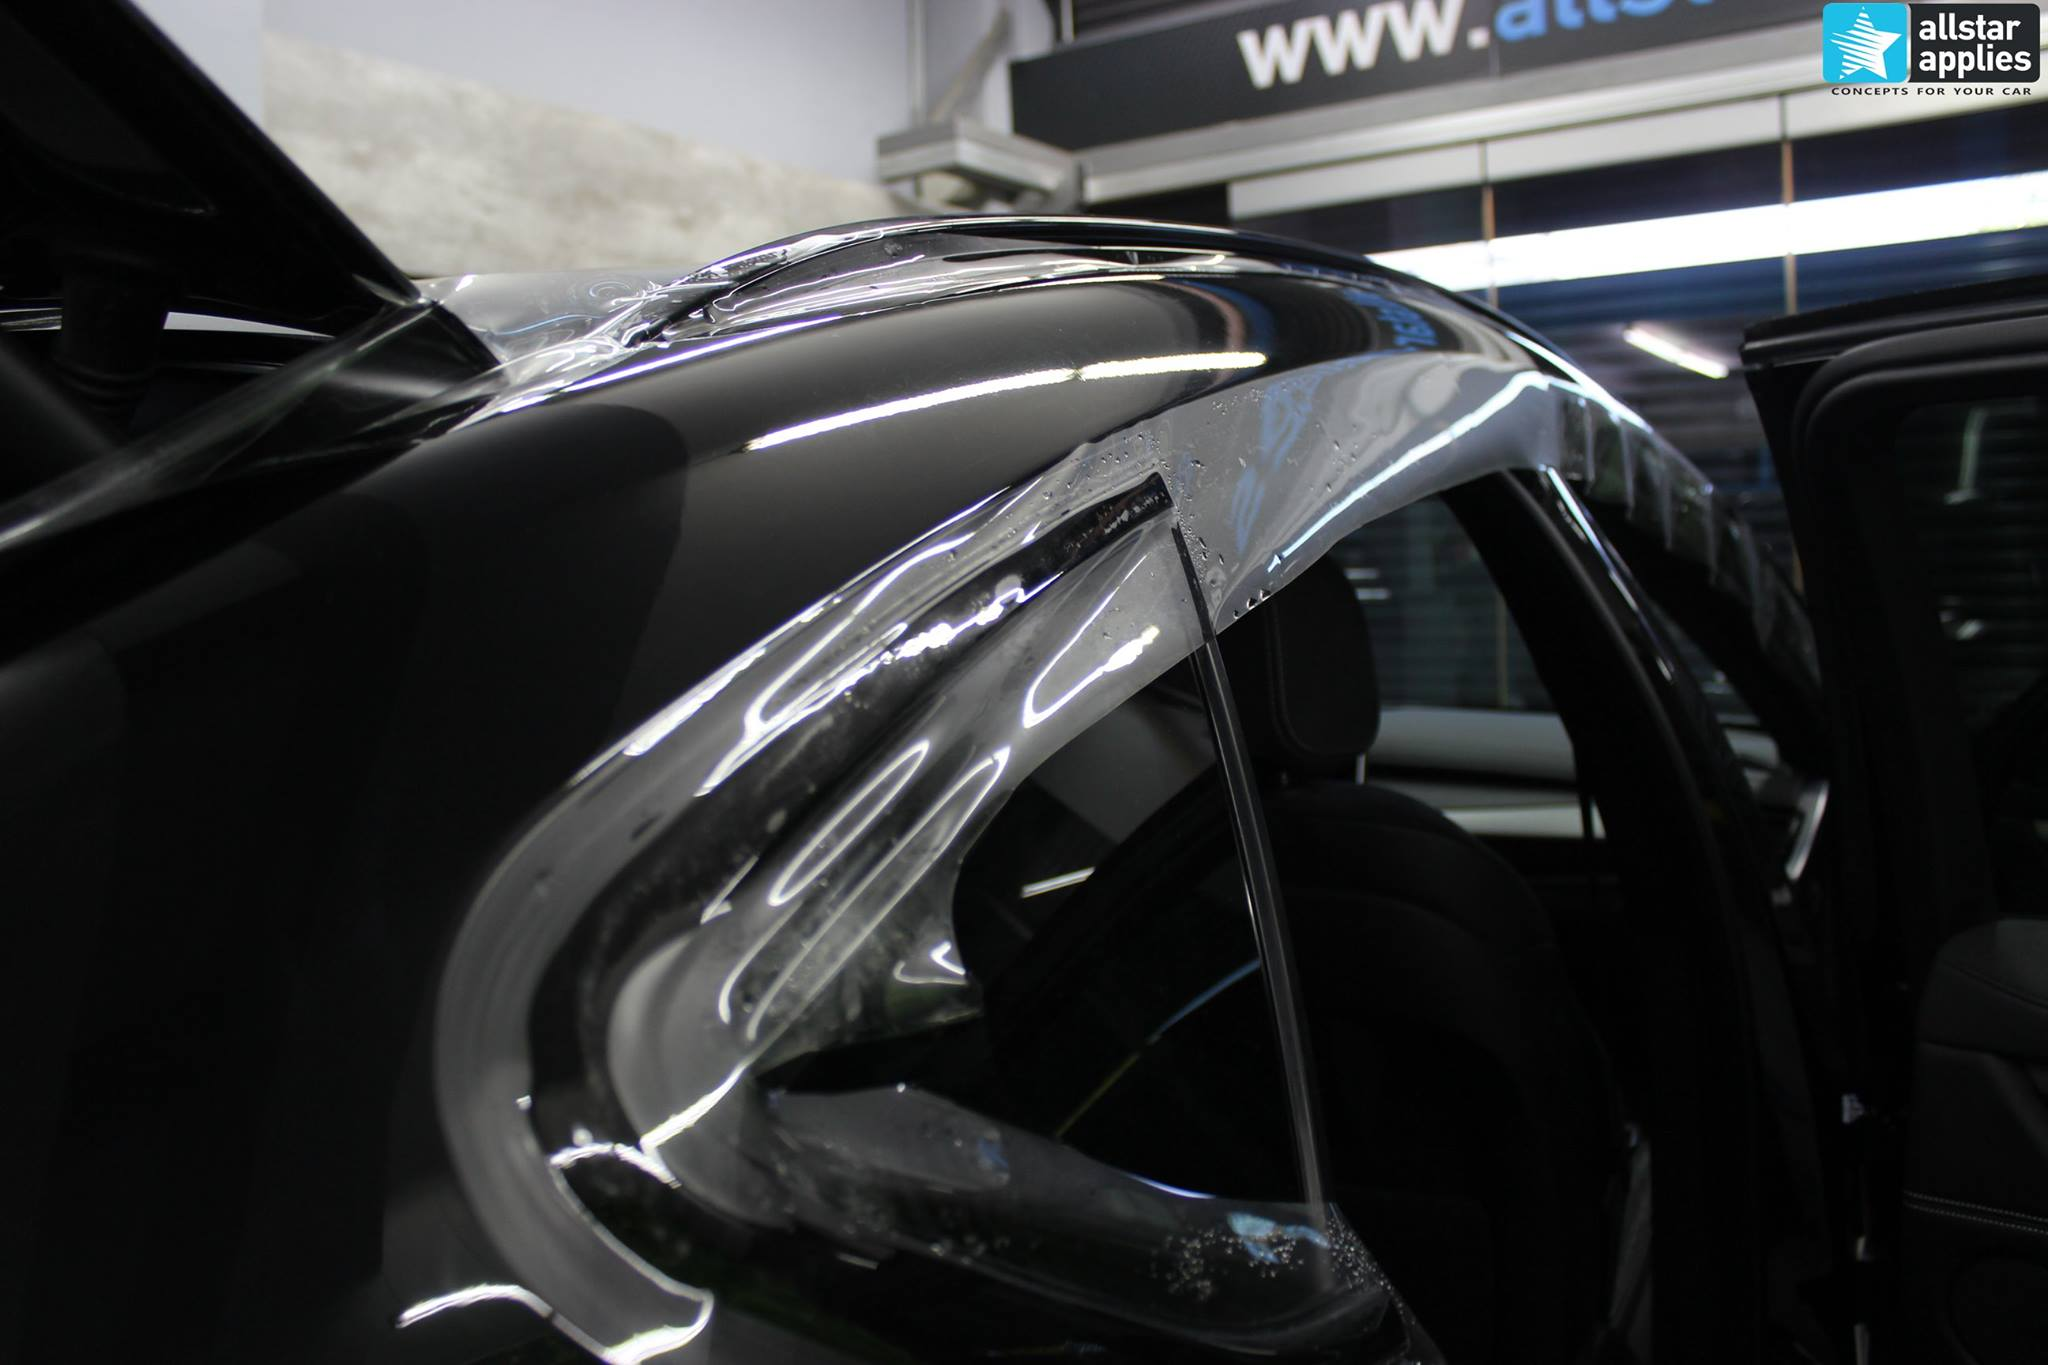 BMW X6 Μ50 - Full Paint Protection Film (6)